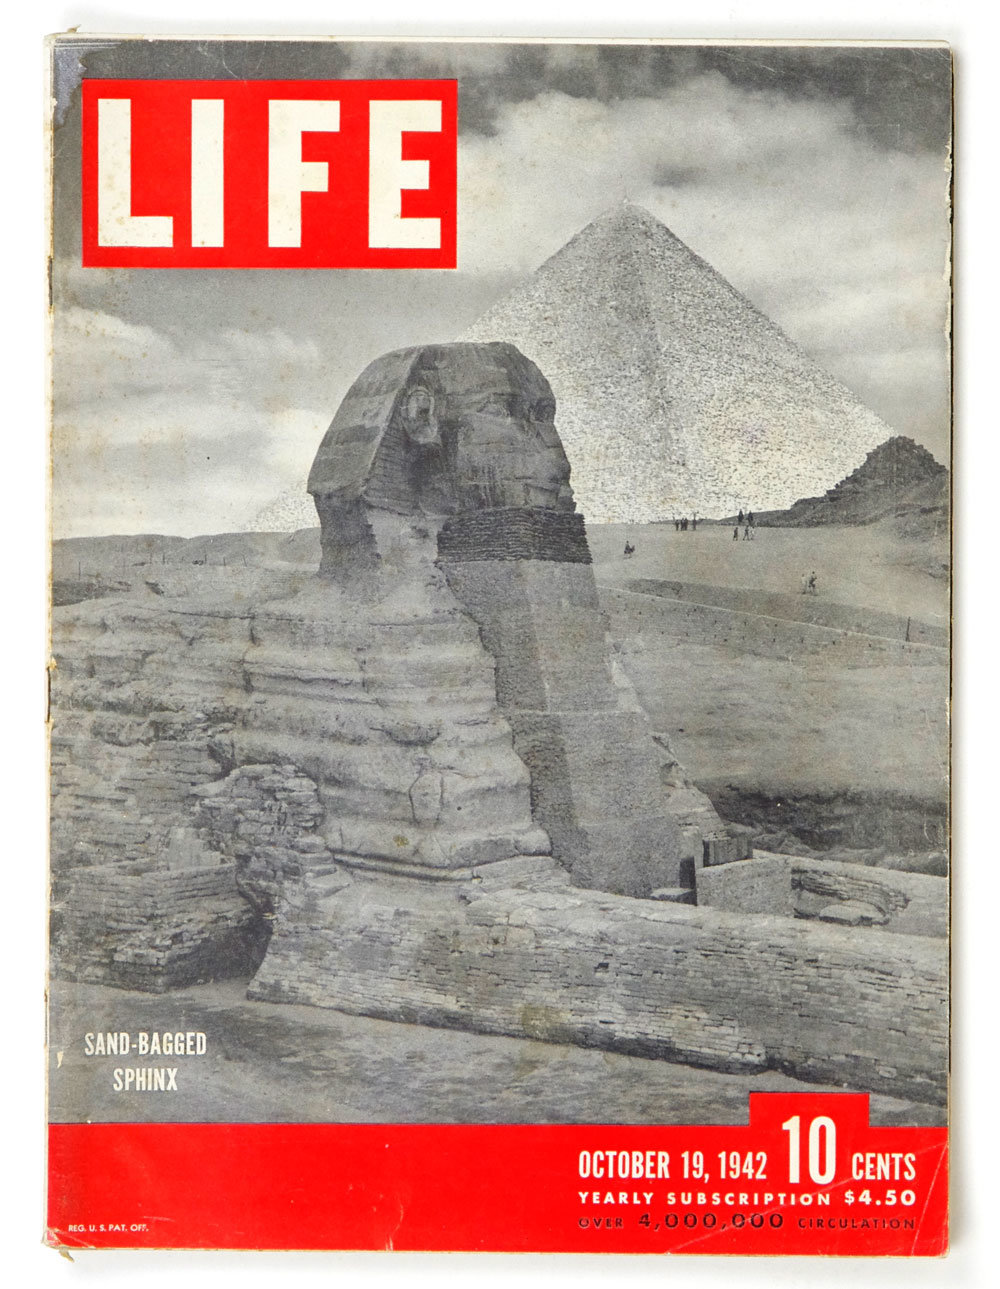 LIFE Magazine 1942 October 19 Sand Bagged Sphinx